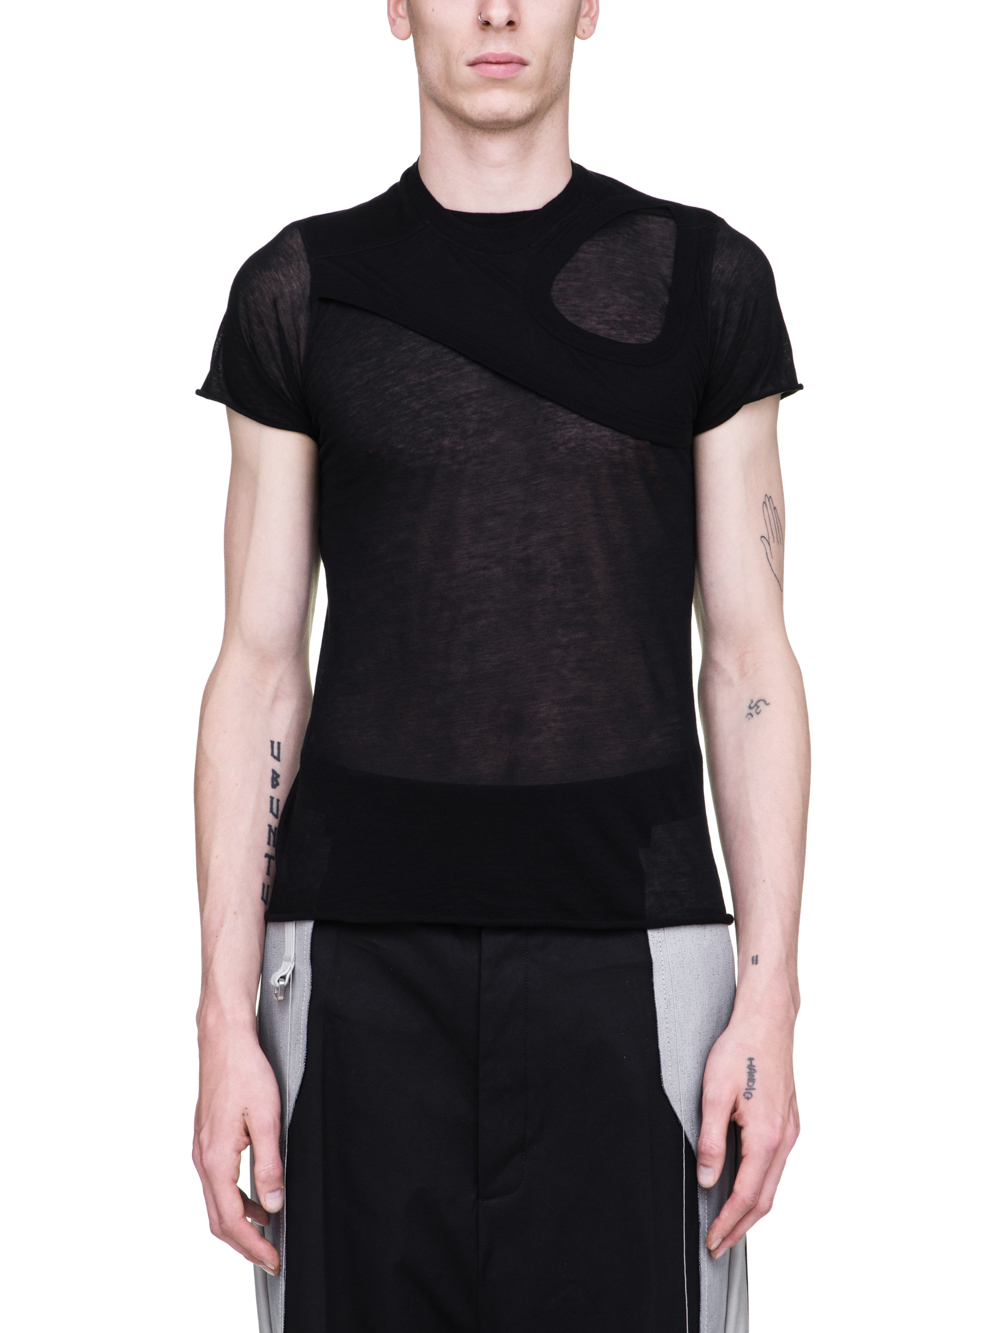 RICK OWENS SS19 BABEL LEVEL SHORTSLEEVE TEE WITH MEMBRANE